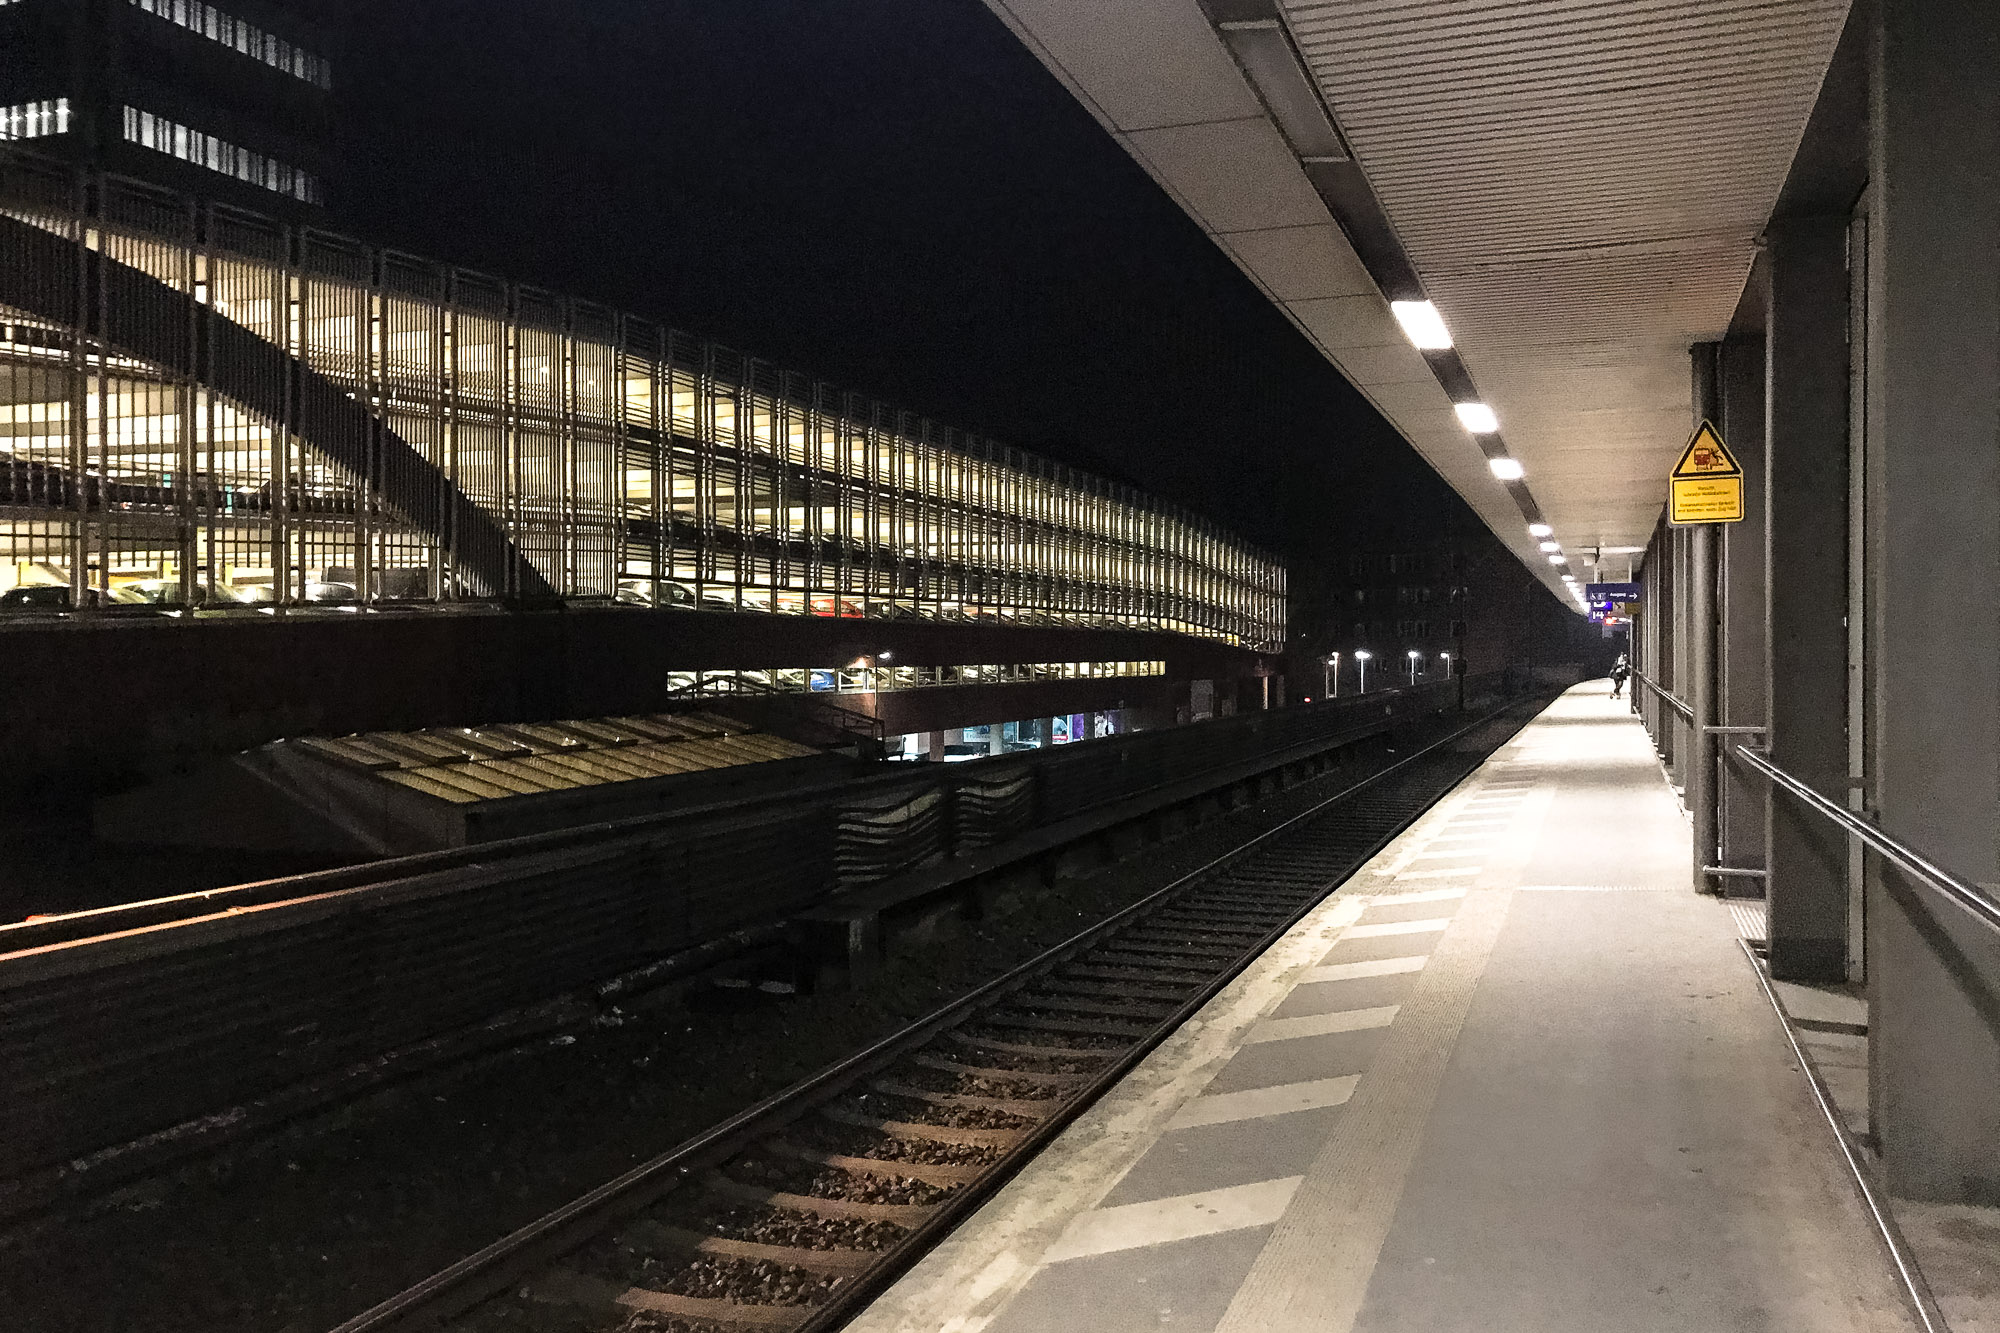 Hannover central